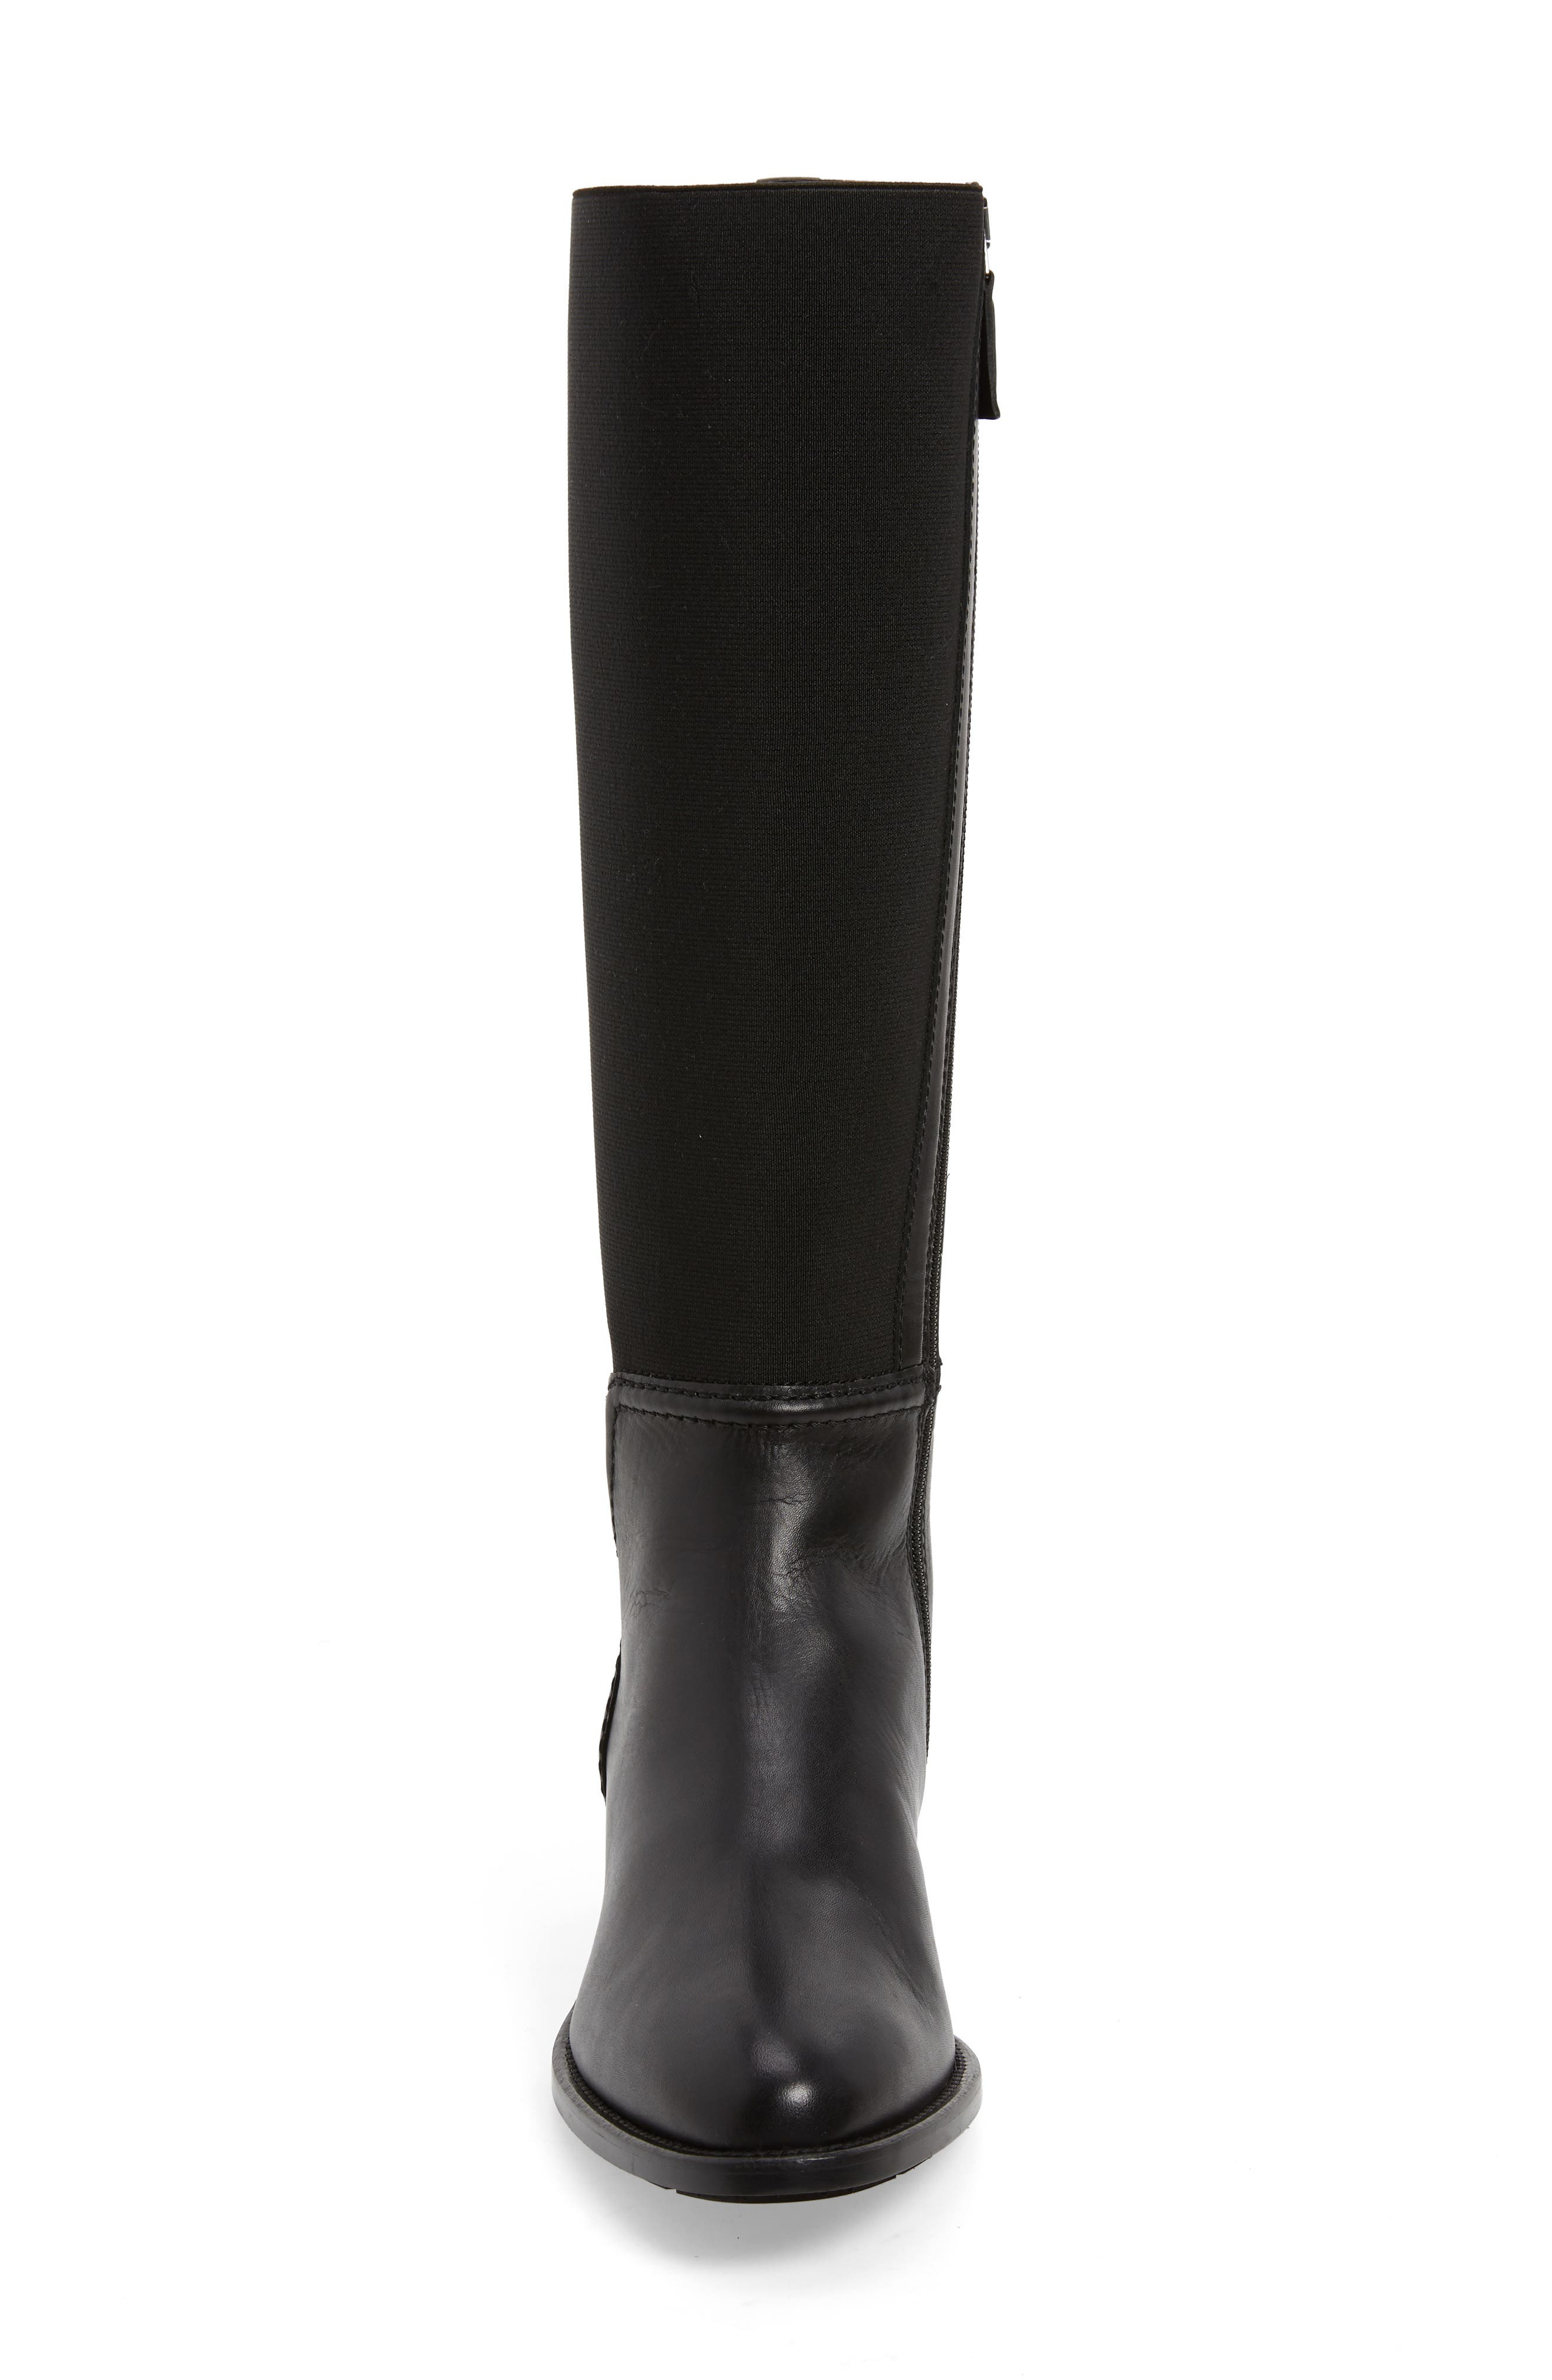 Nanina Water Resistant Riding Boot,                             Alternate thumbnail 4, color,                             BLACK